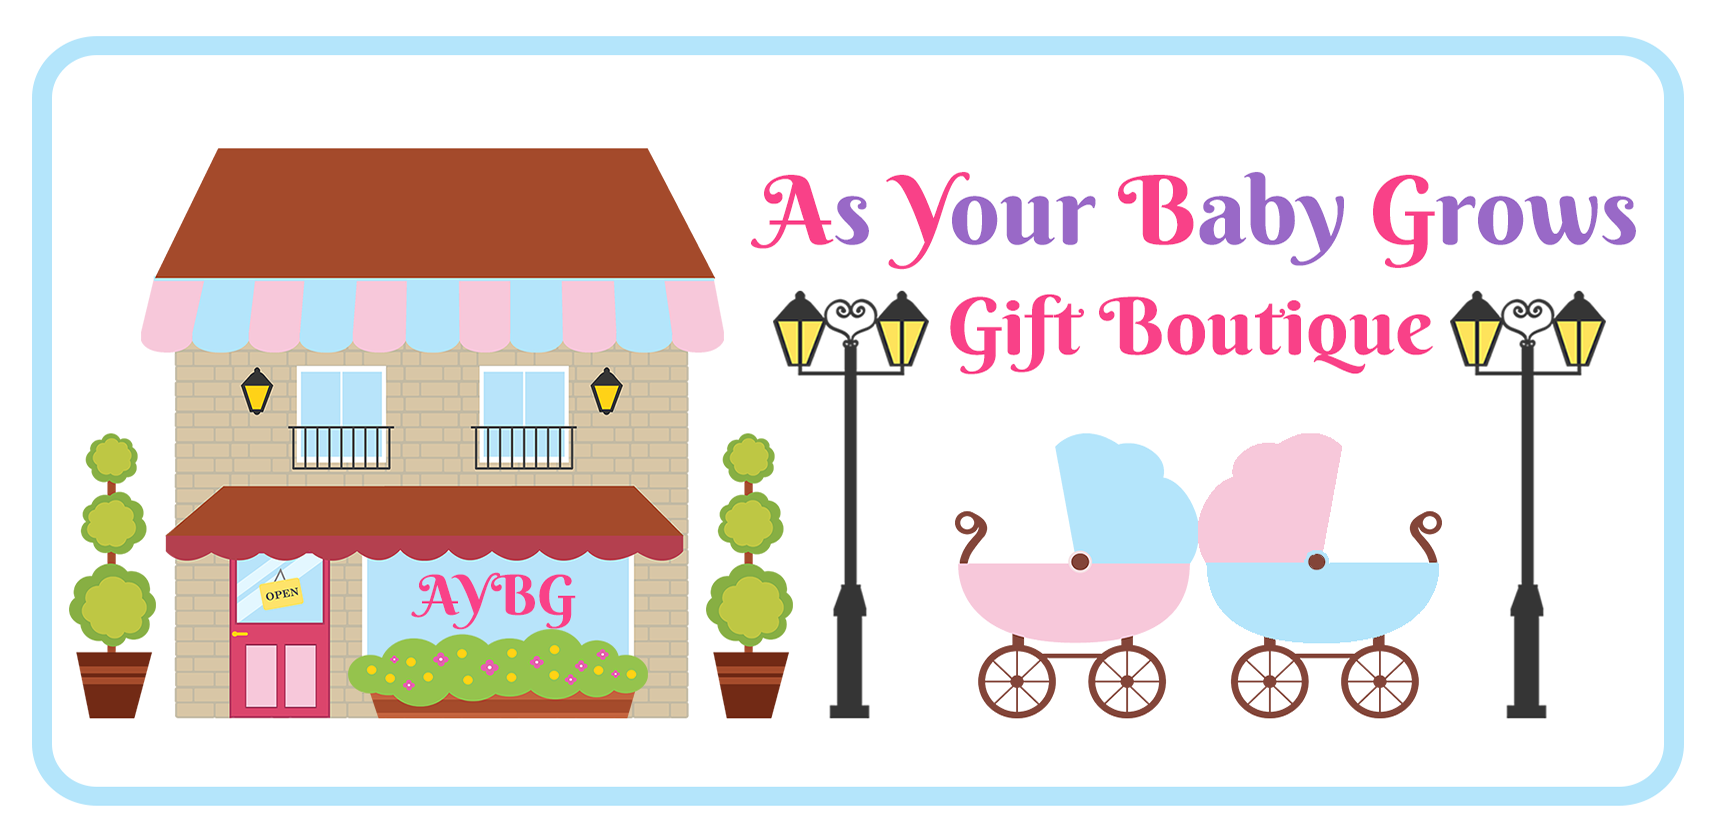 As Your Baby Grows Gift Boutique